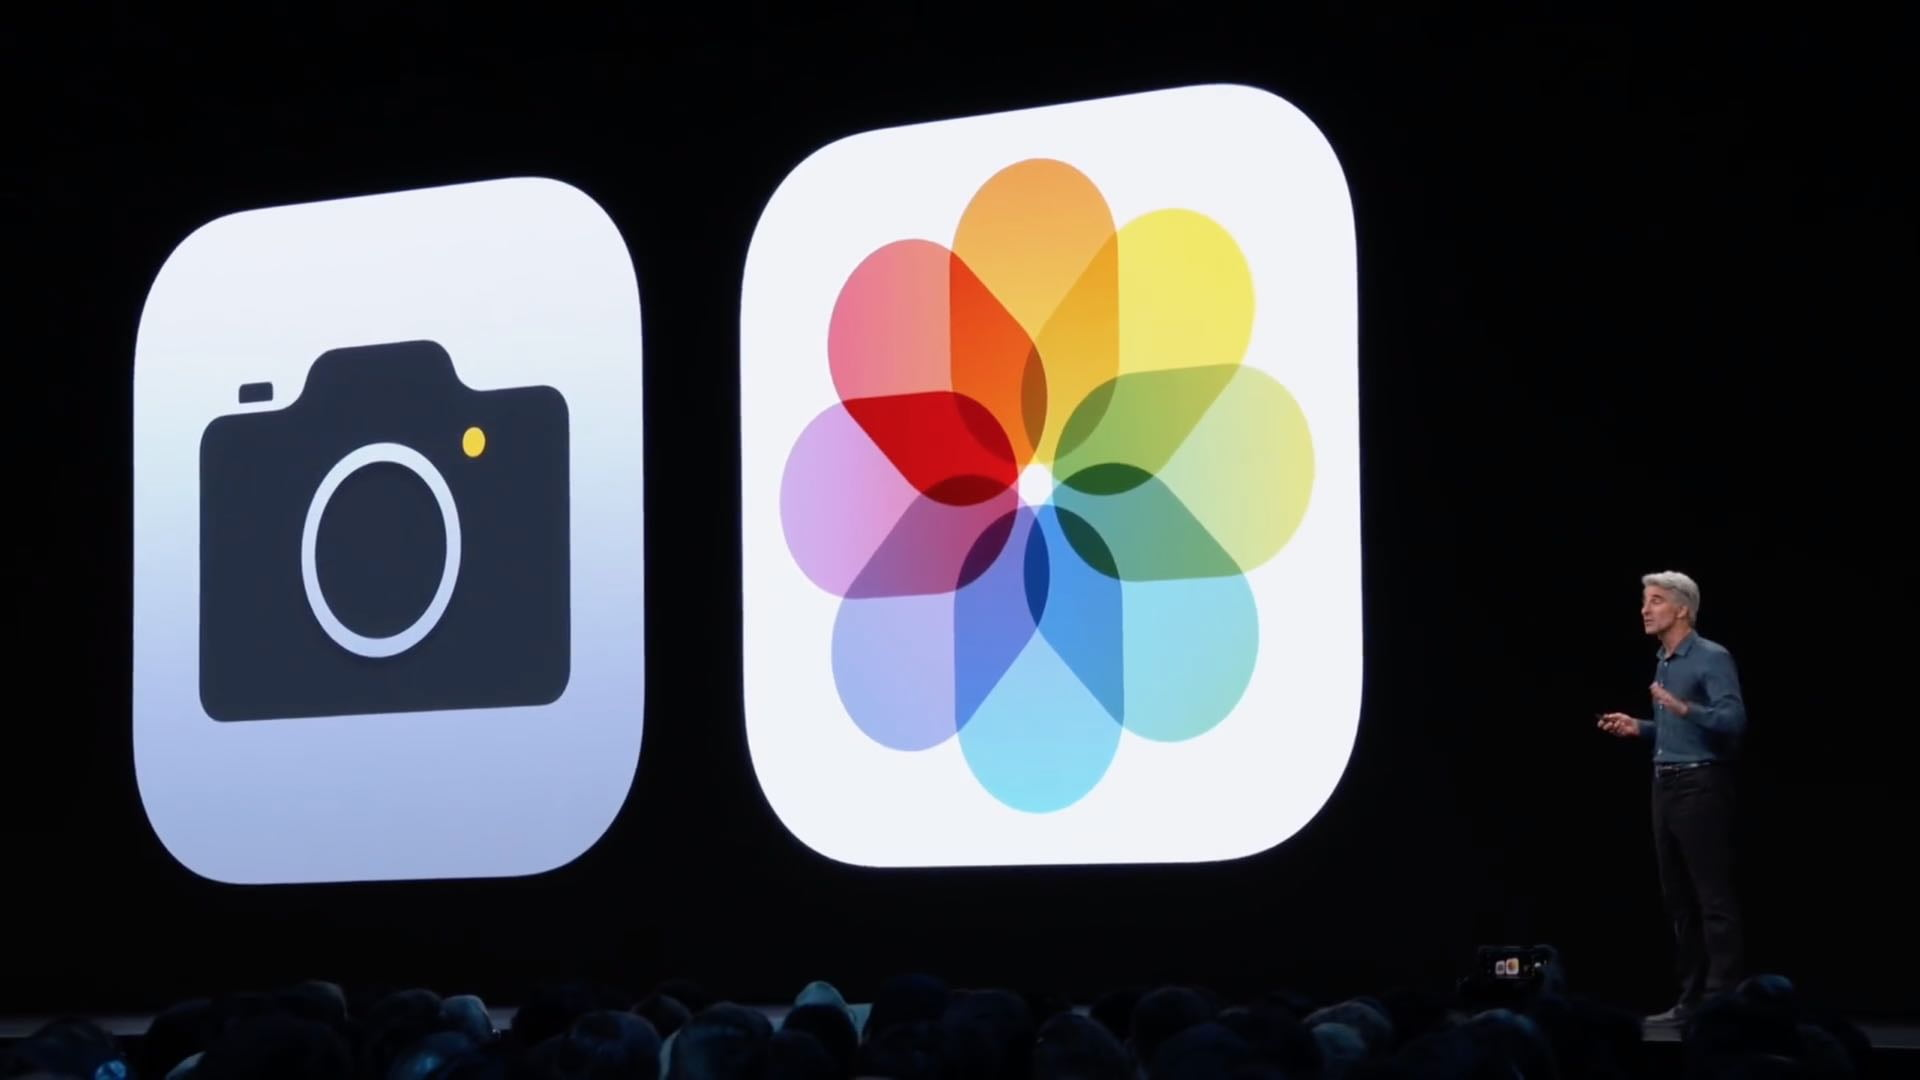 How to crop, straighten and change the perspective of photos and videos on iPad and iPhone